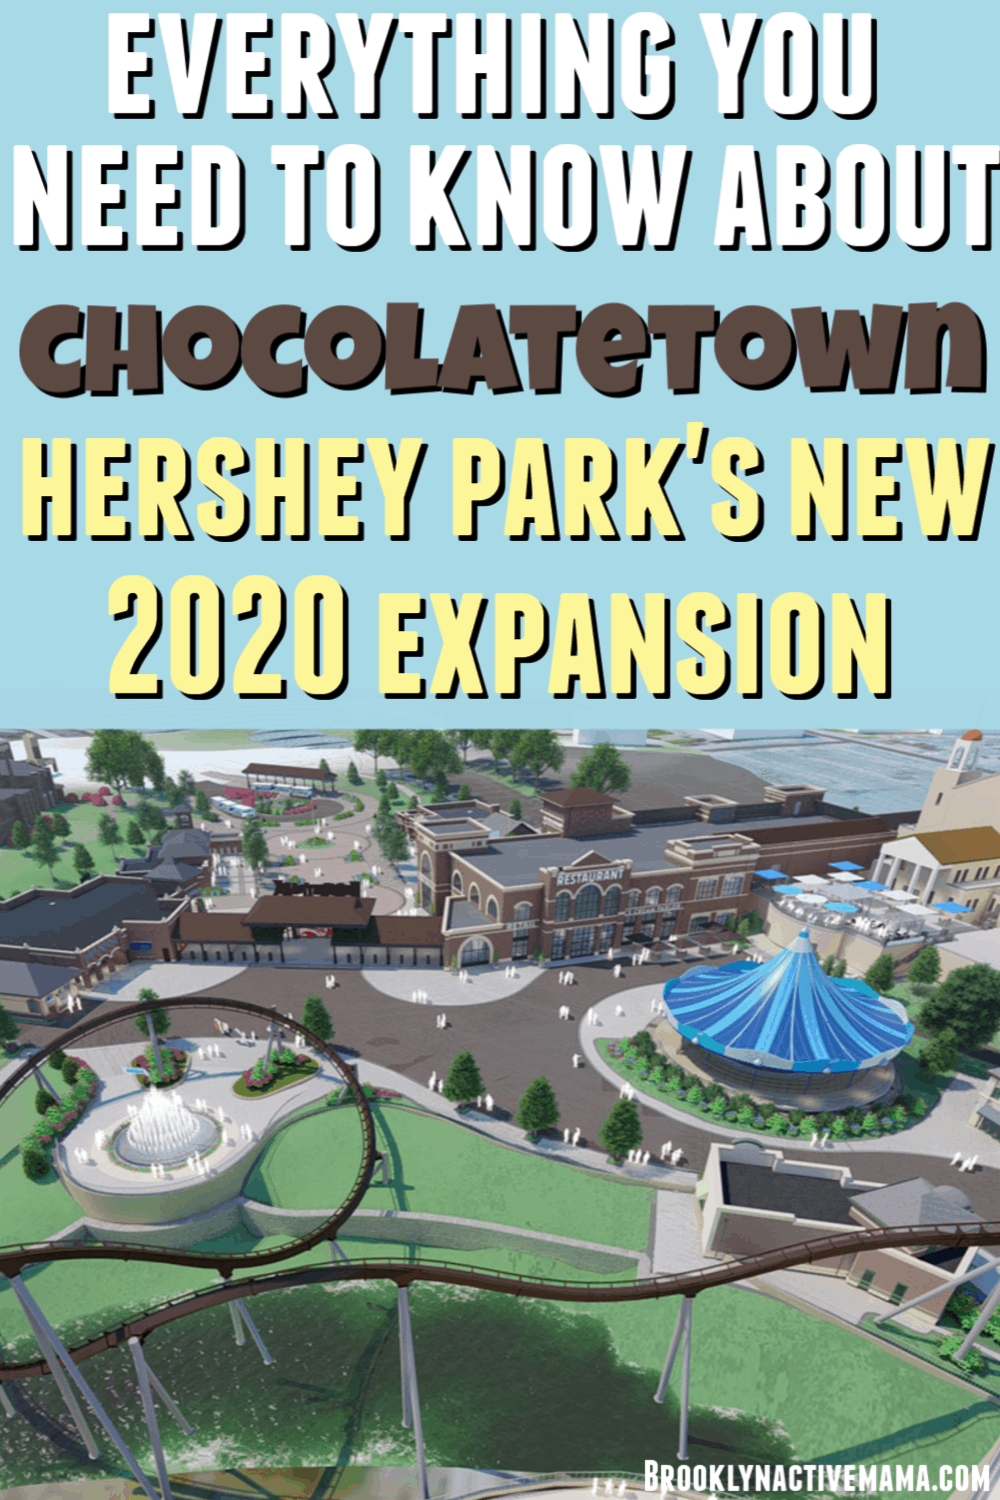 Chocolatetown is a $150 million transformational expansion that is coming to Hersheypark in 2020. Learn all about the sweet details here! #hersheypark #hersheyparktips #familytravel